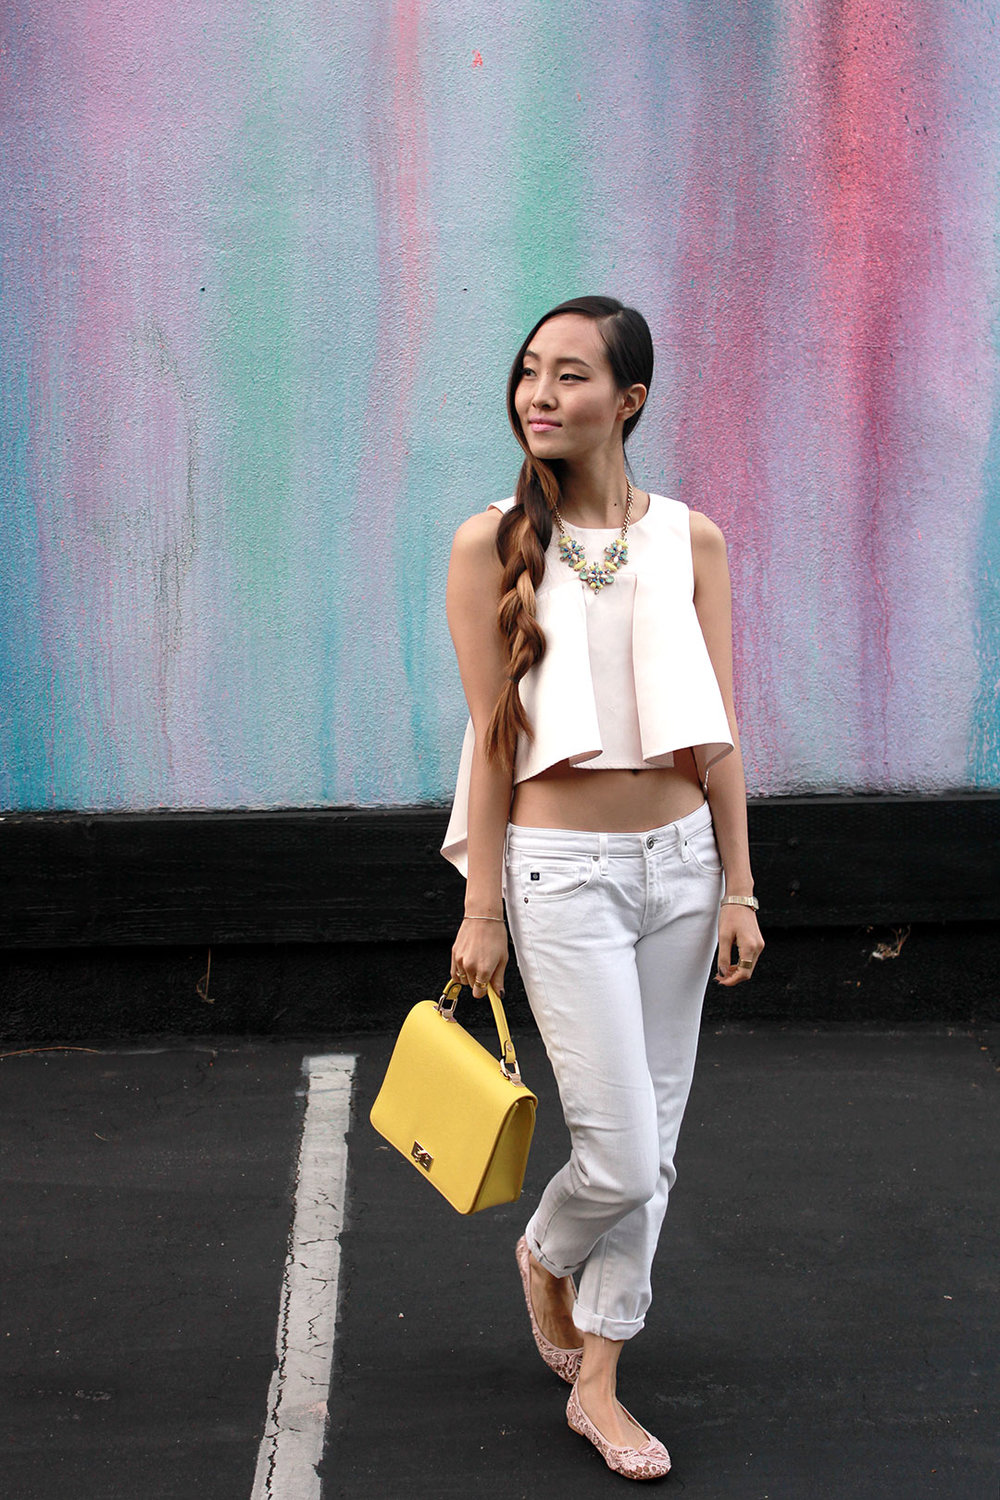 Nasty Gal top, Baublebar necklace, AG jeans, H&M flats, bag from a boutique in Seoul